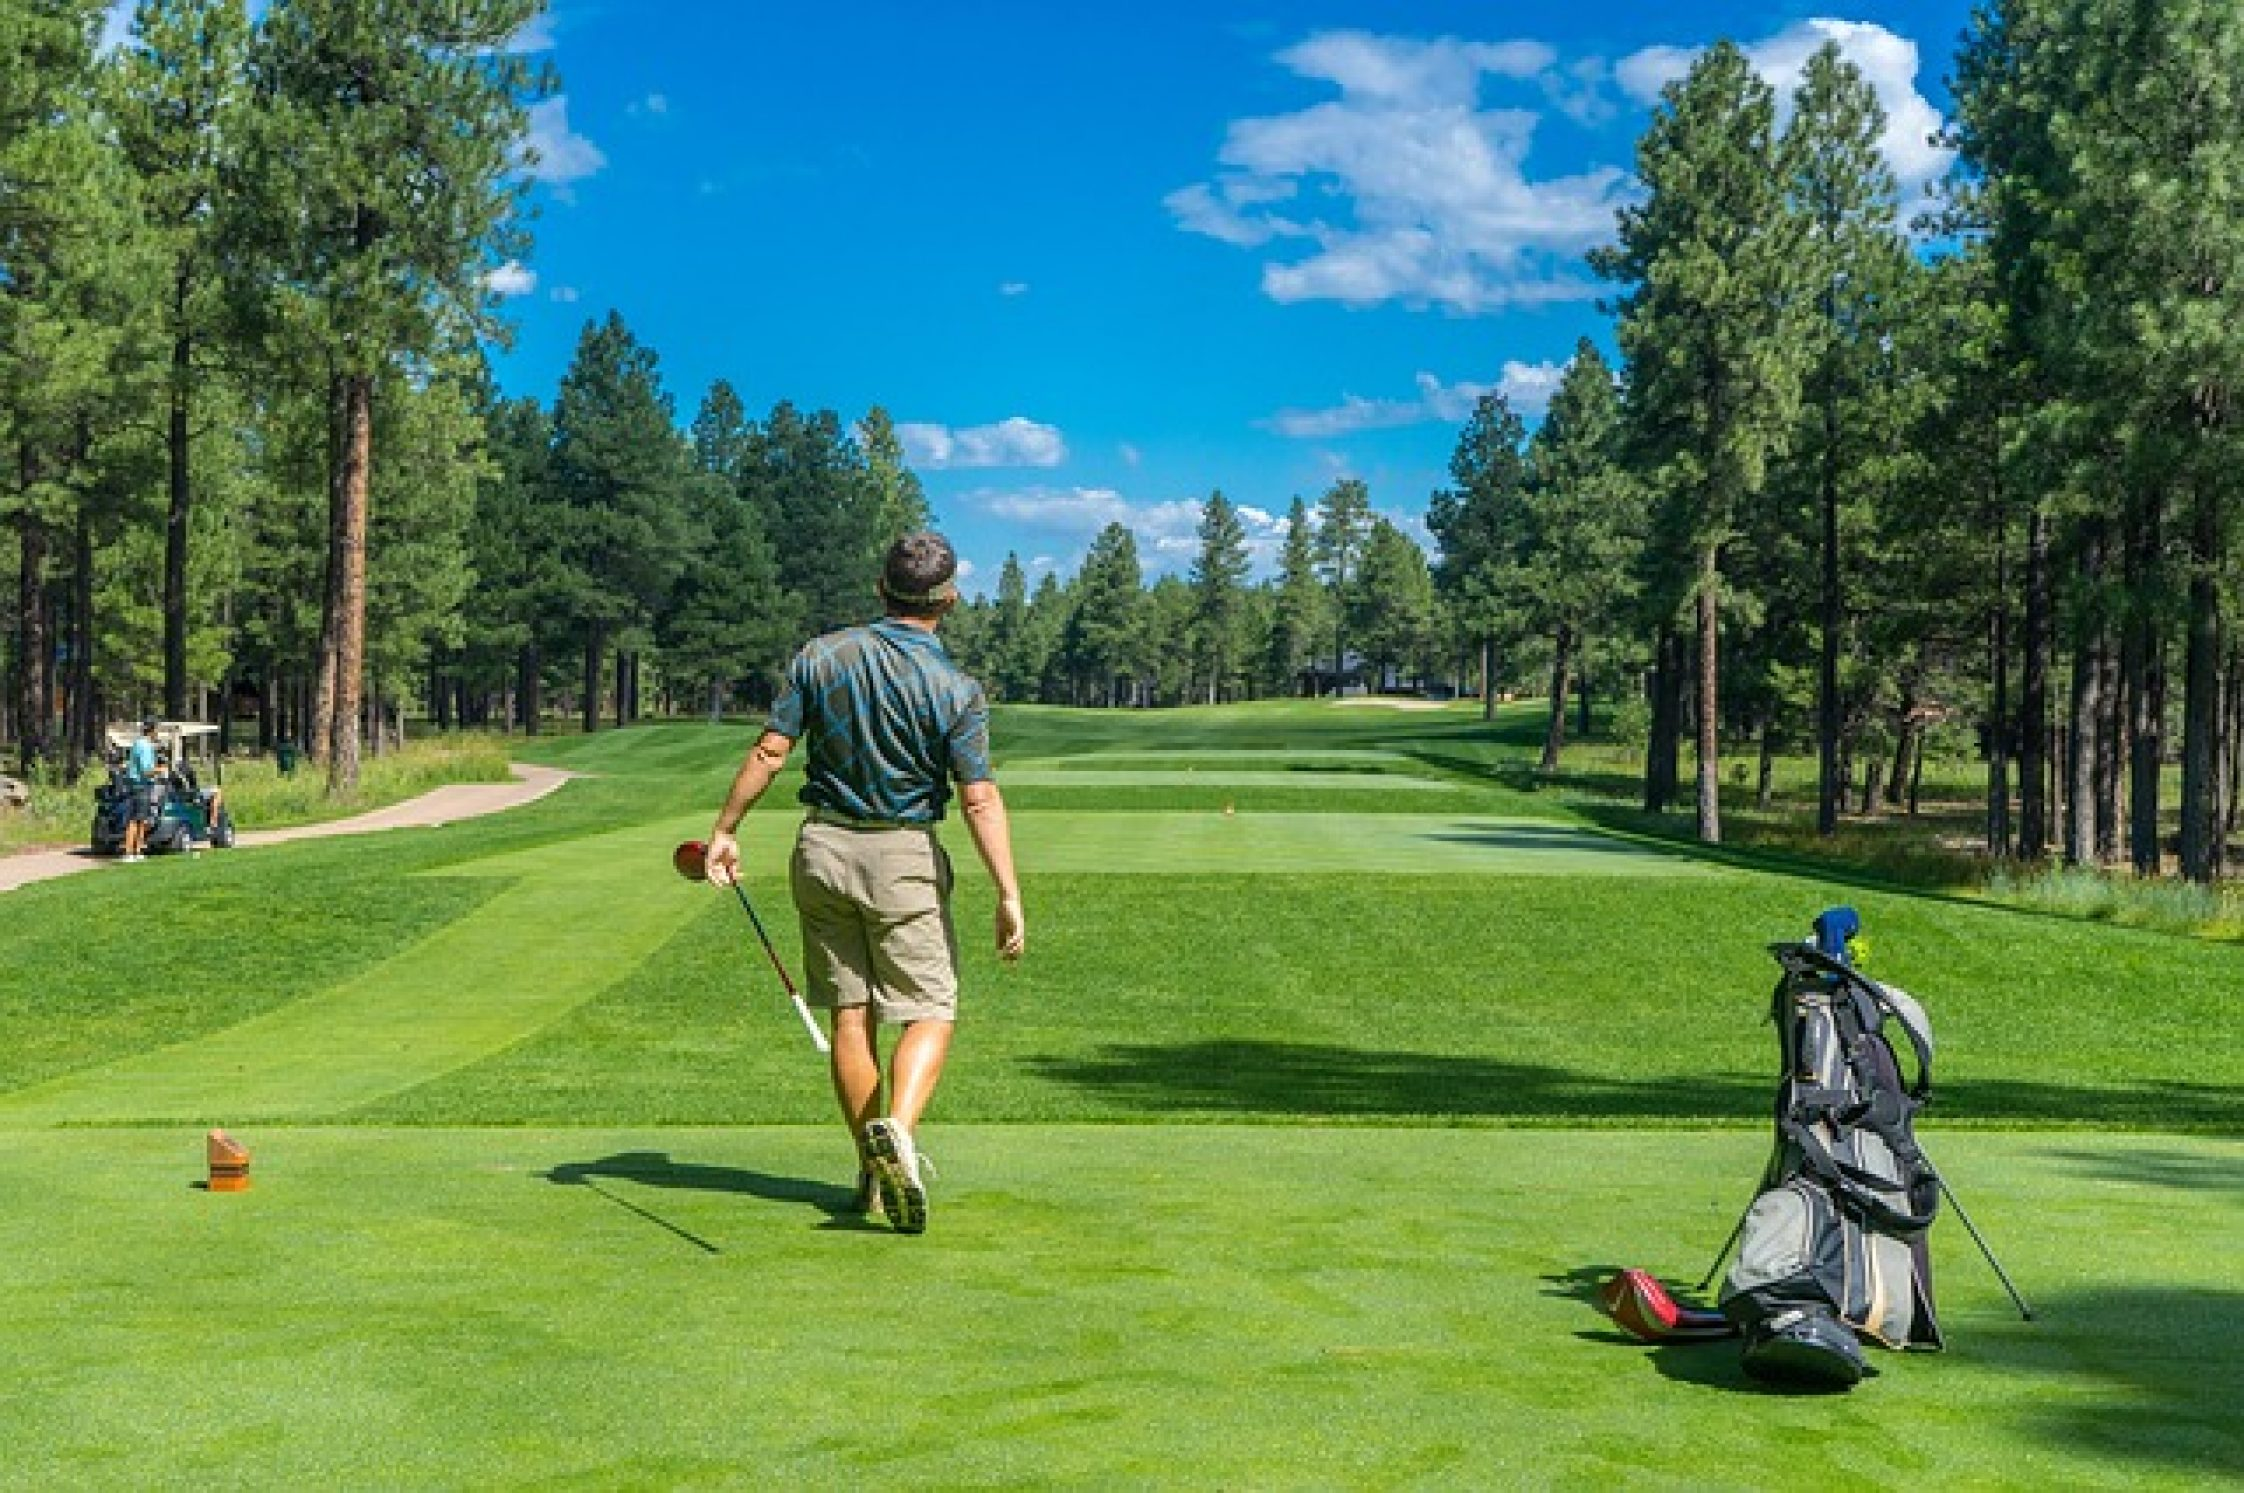 Footgolf A Key Factor In The Future Of Golf – Press Release